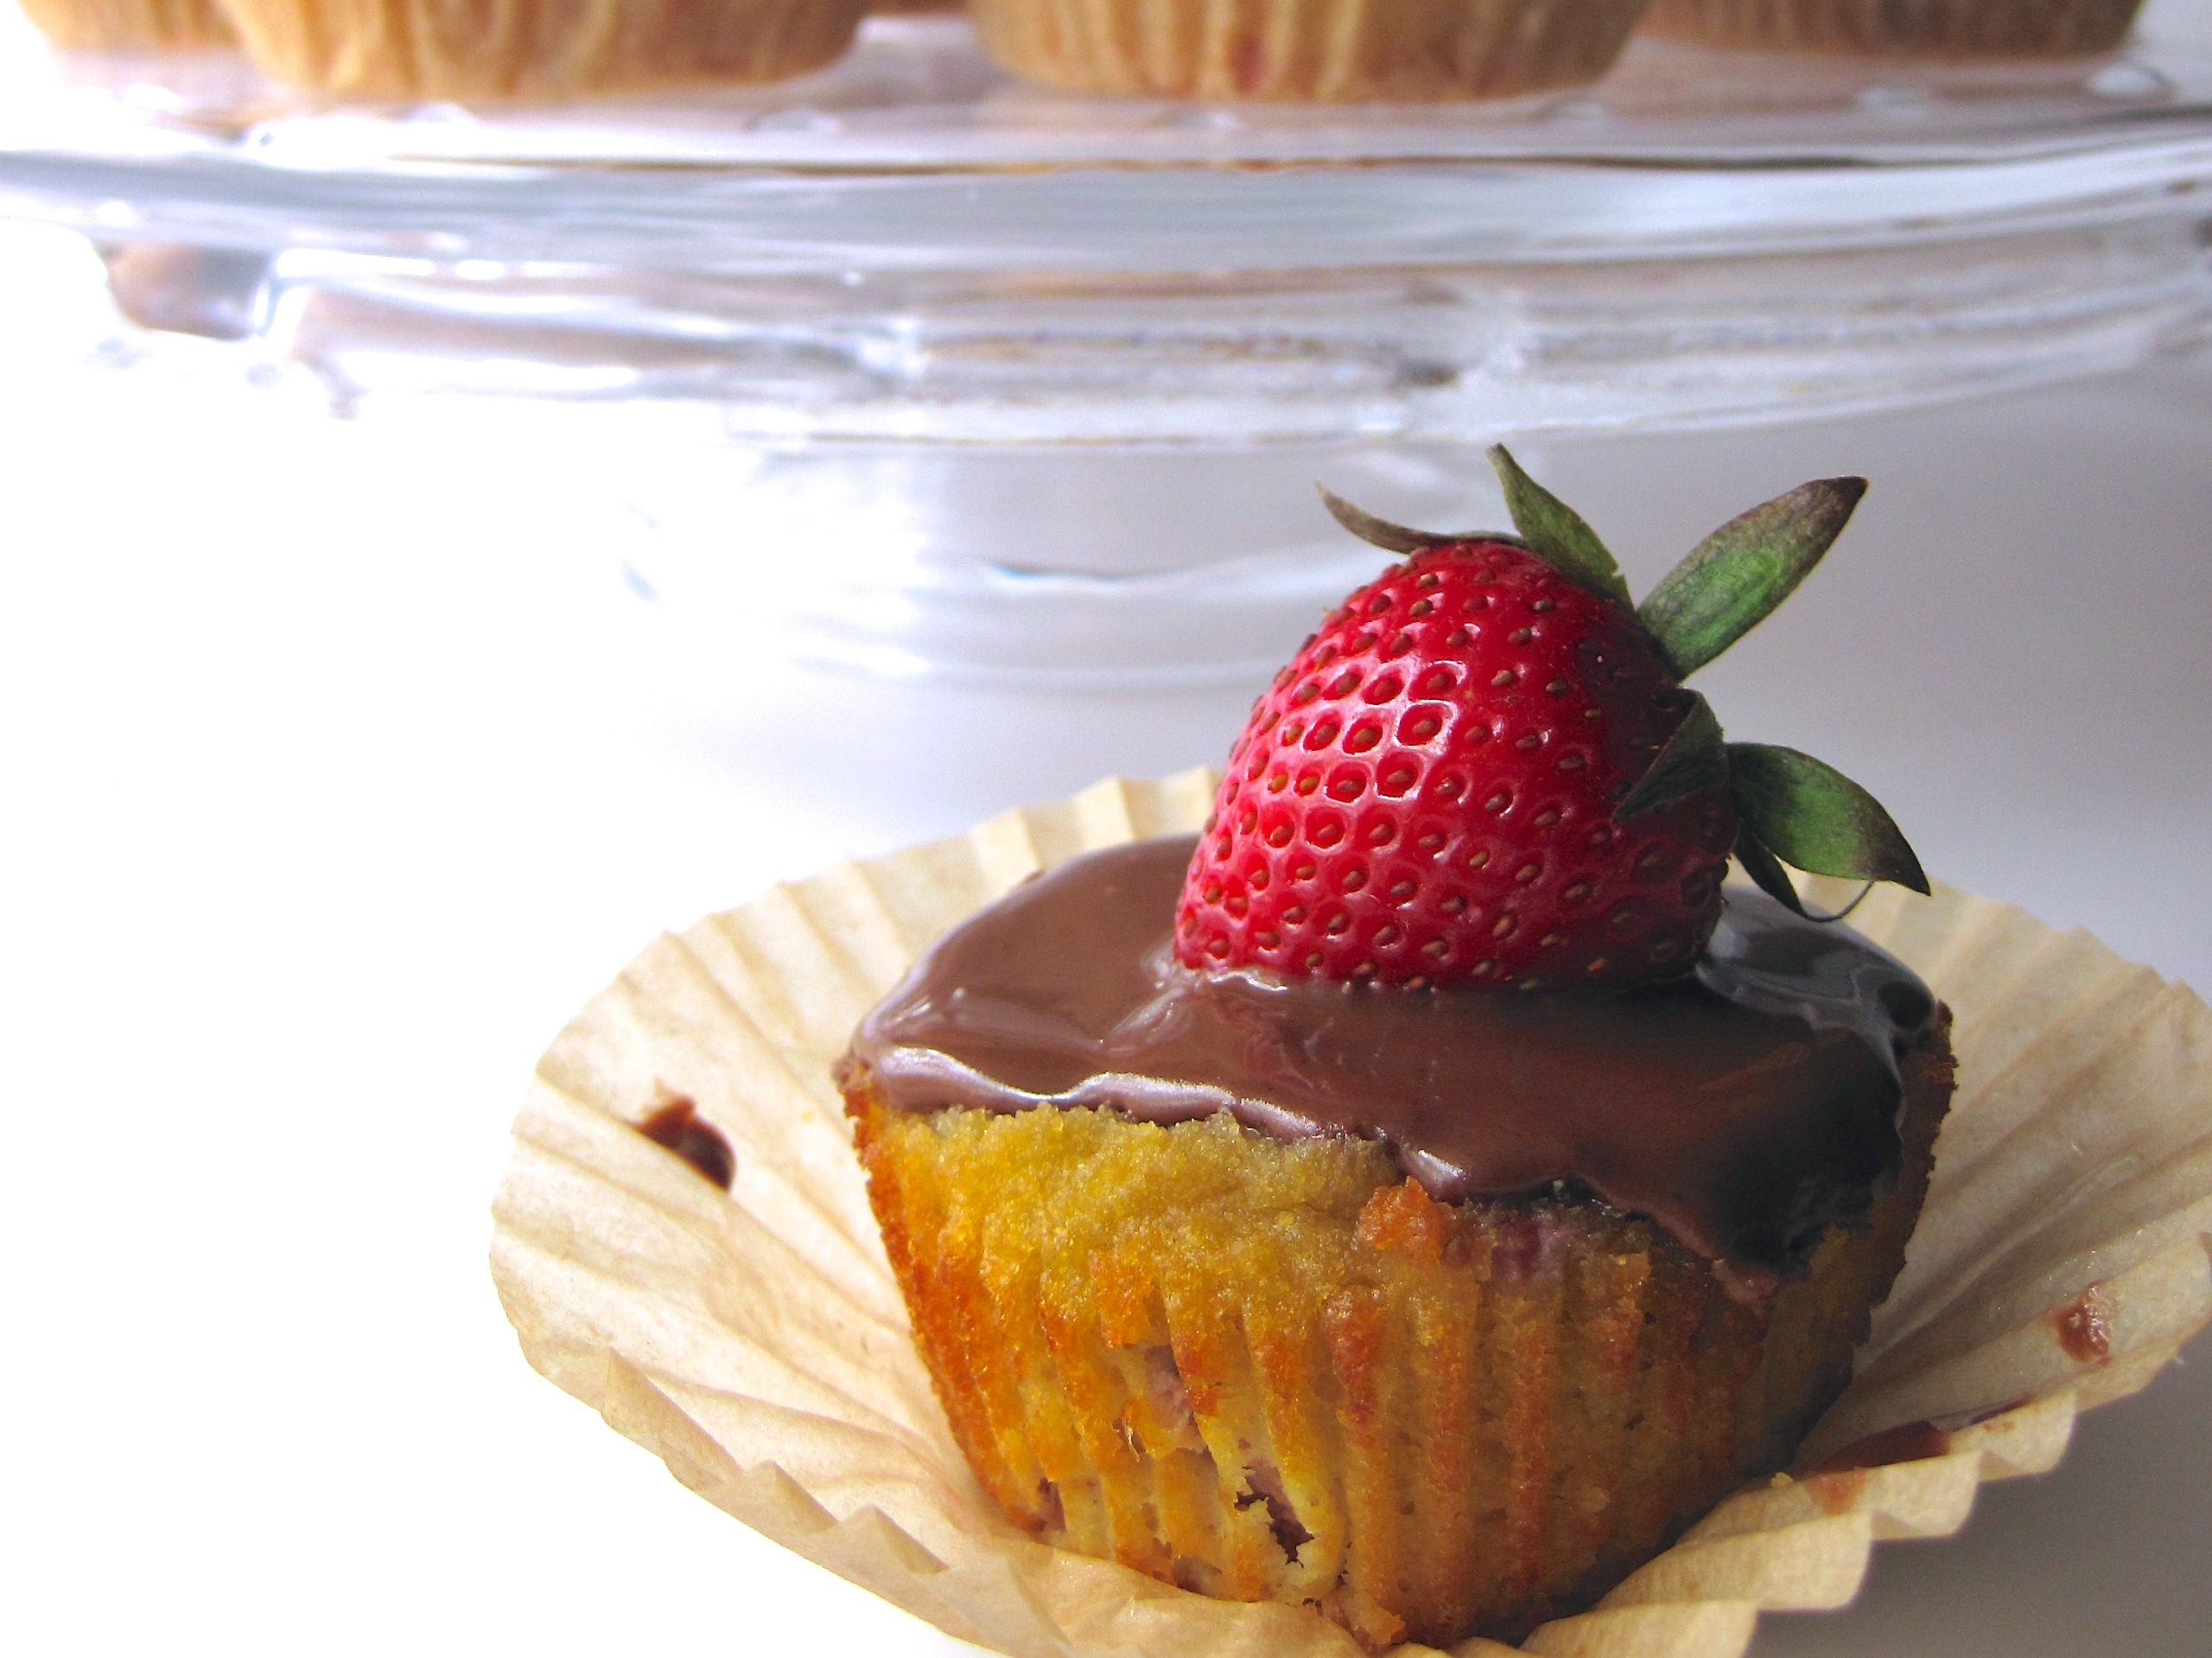 Valentine's Day Recipe Ideas - Strawberry Cupcakes with Simple Chocolate Frosting | Paleo dinners, sides, and special treats for the perfect date night. | eatsomethingdelicious.com